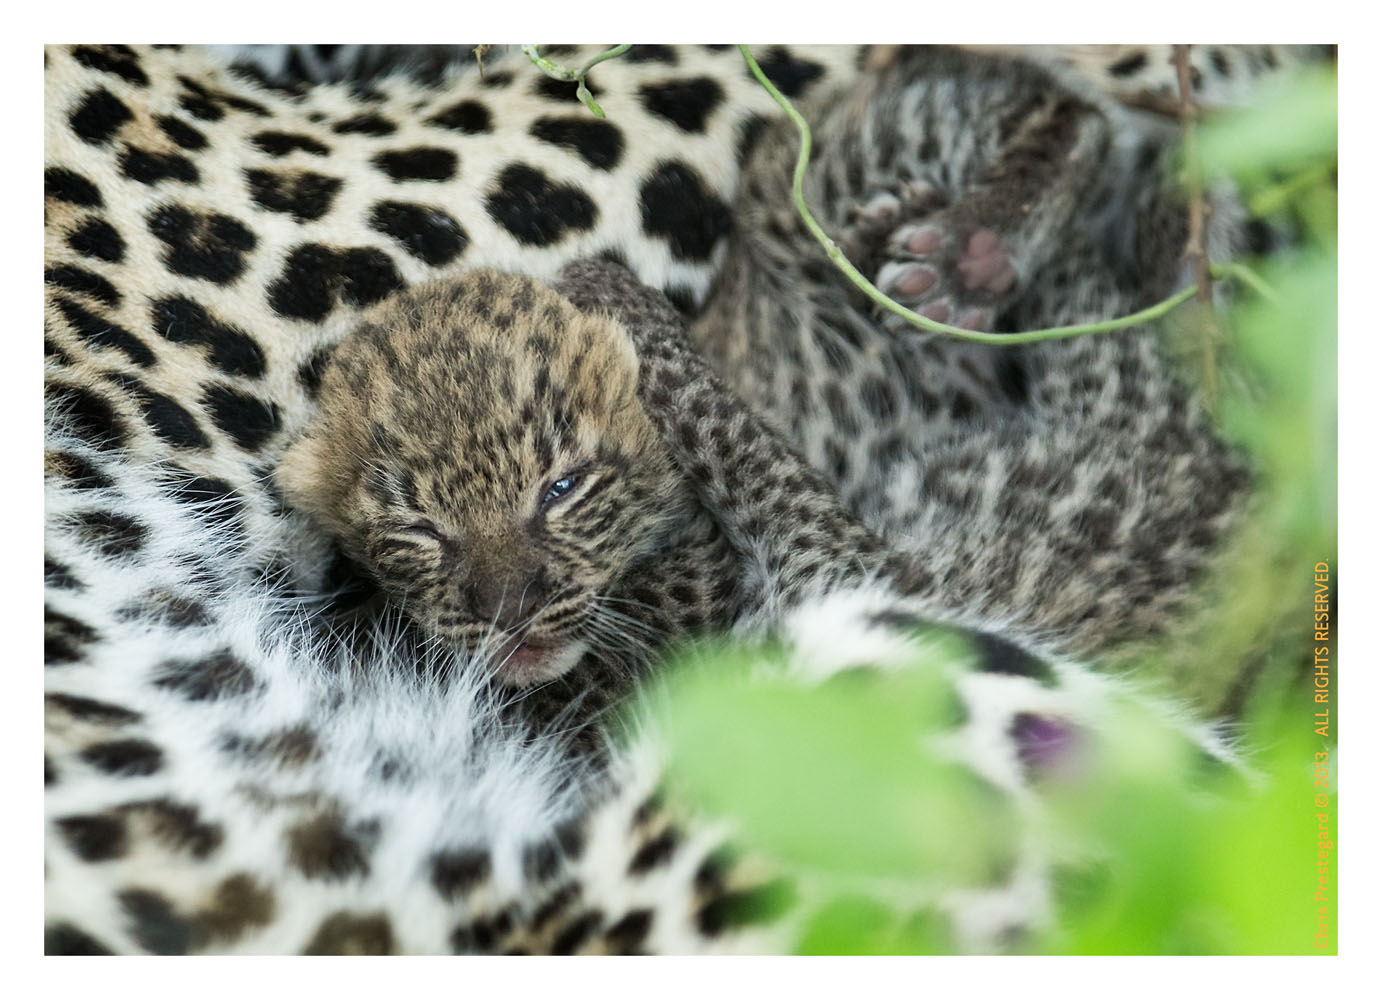 LeopardCub8539-Oct4-2013